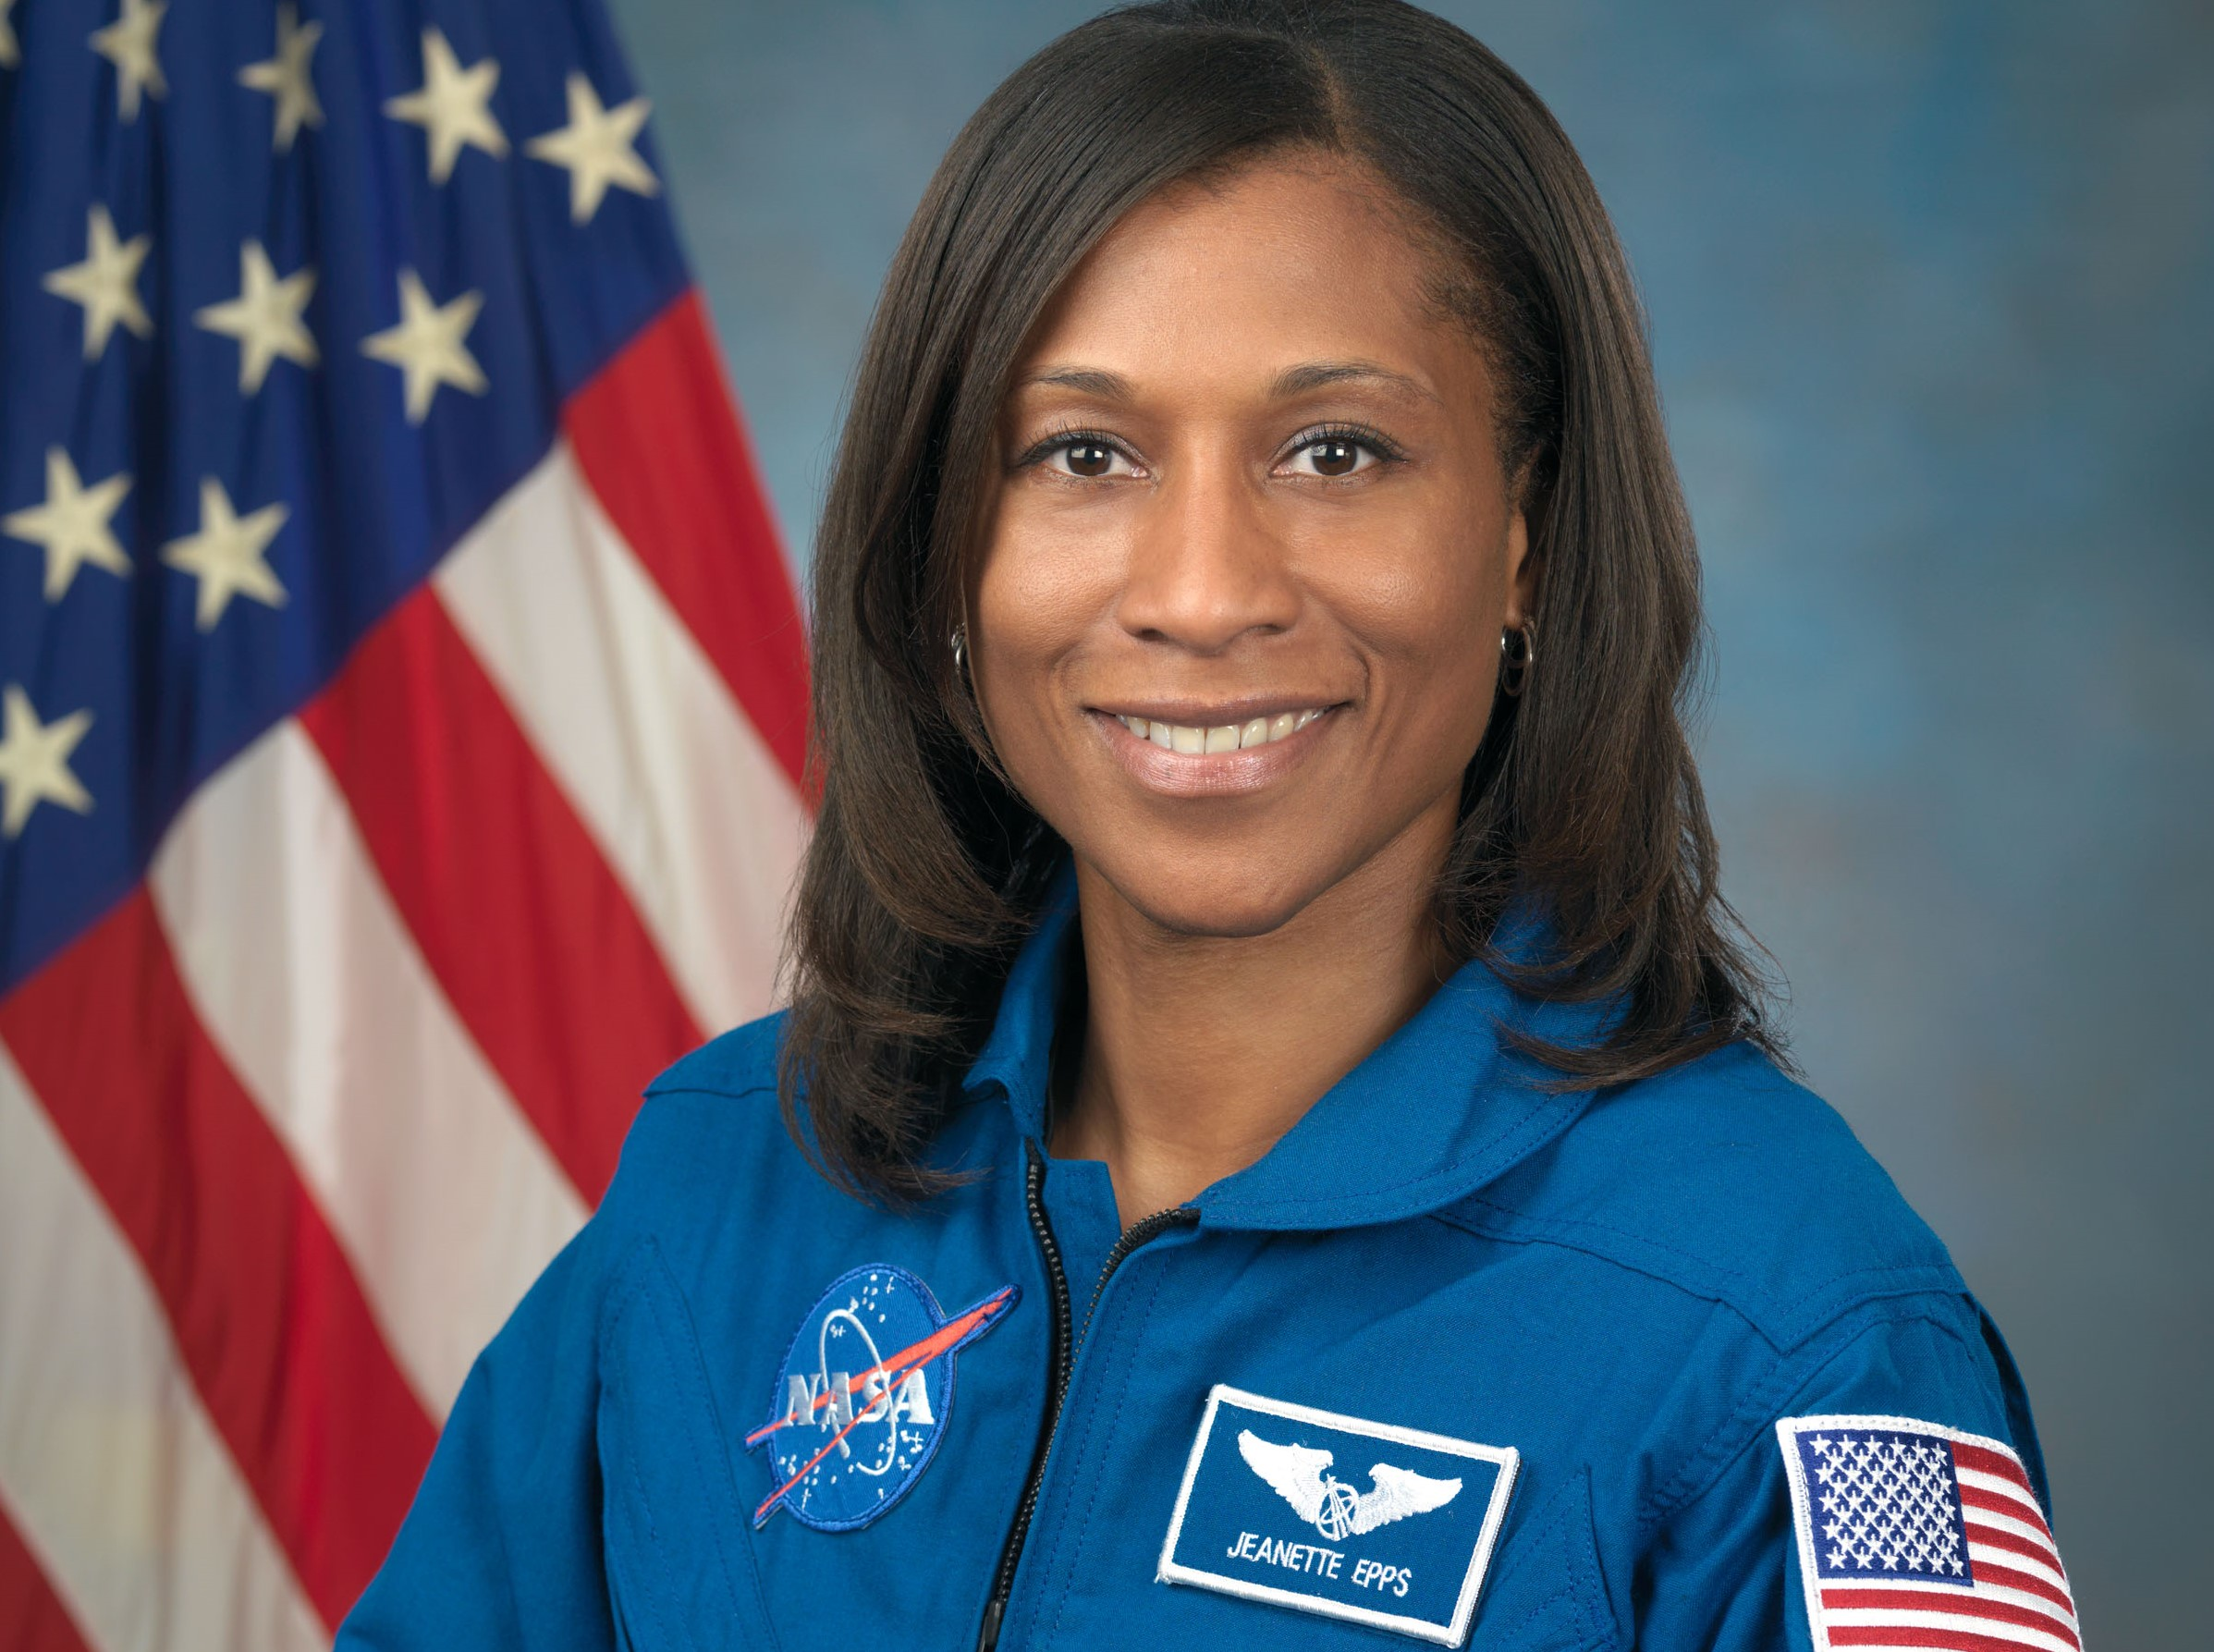 Photo Date: September 30, 2009 Location: Bldg. 8, Room 272 Photo Studio Subject: Official Astronaut portrait of Jeanette Epps Photographer:  Robert Markowitz